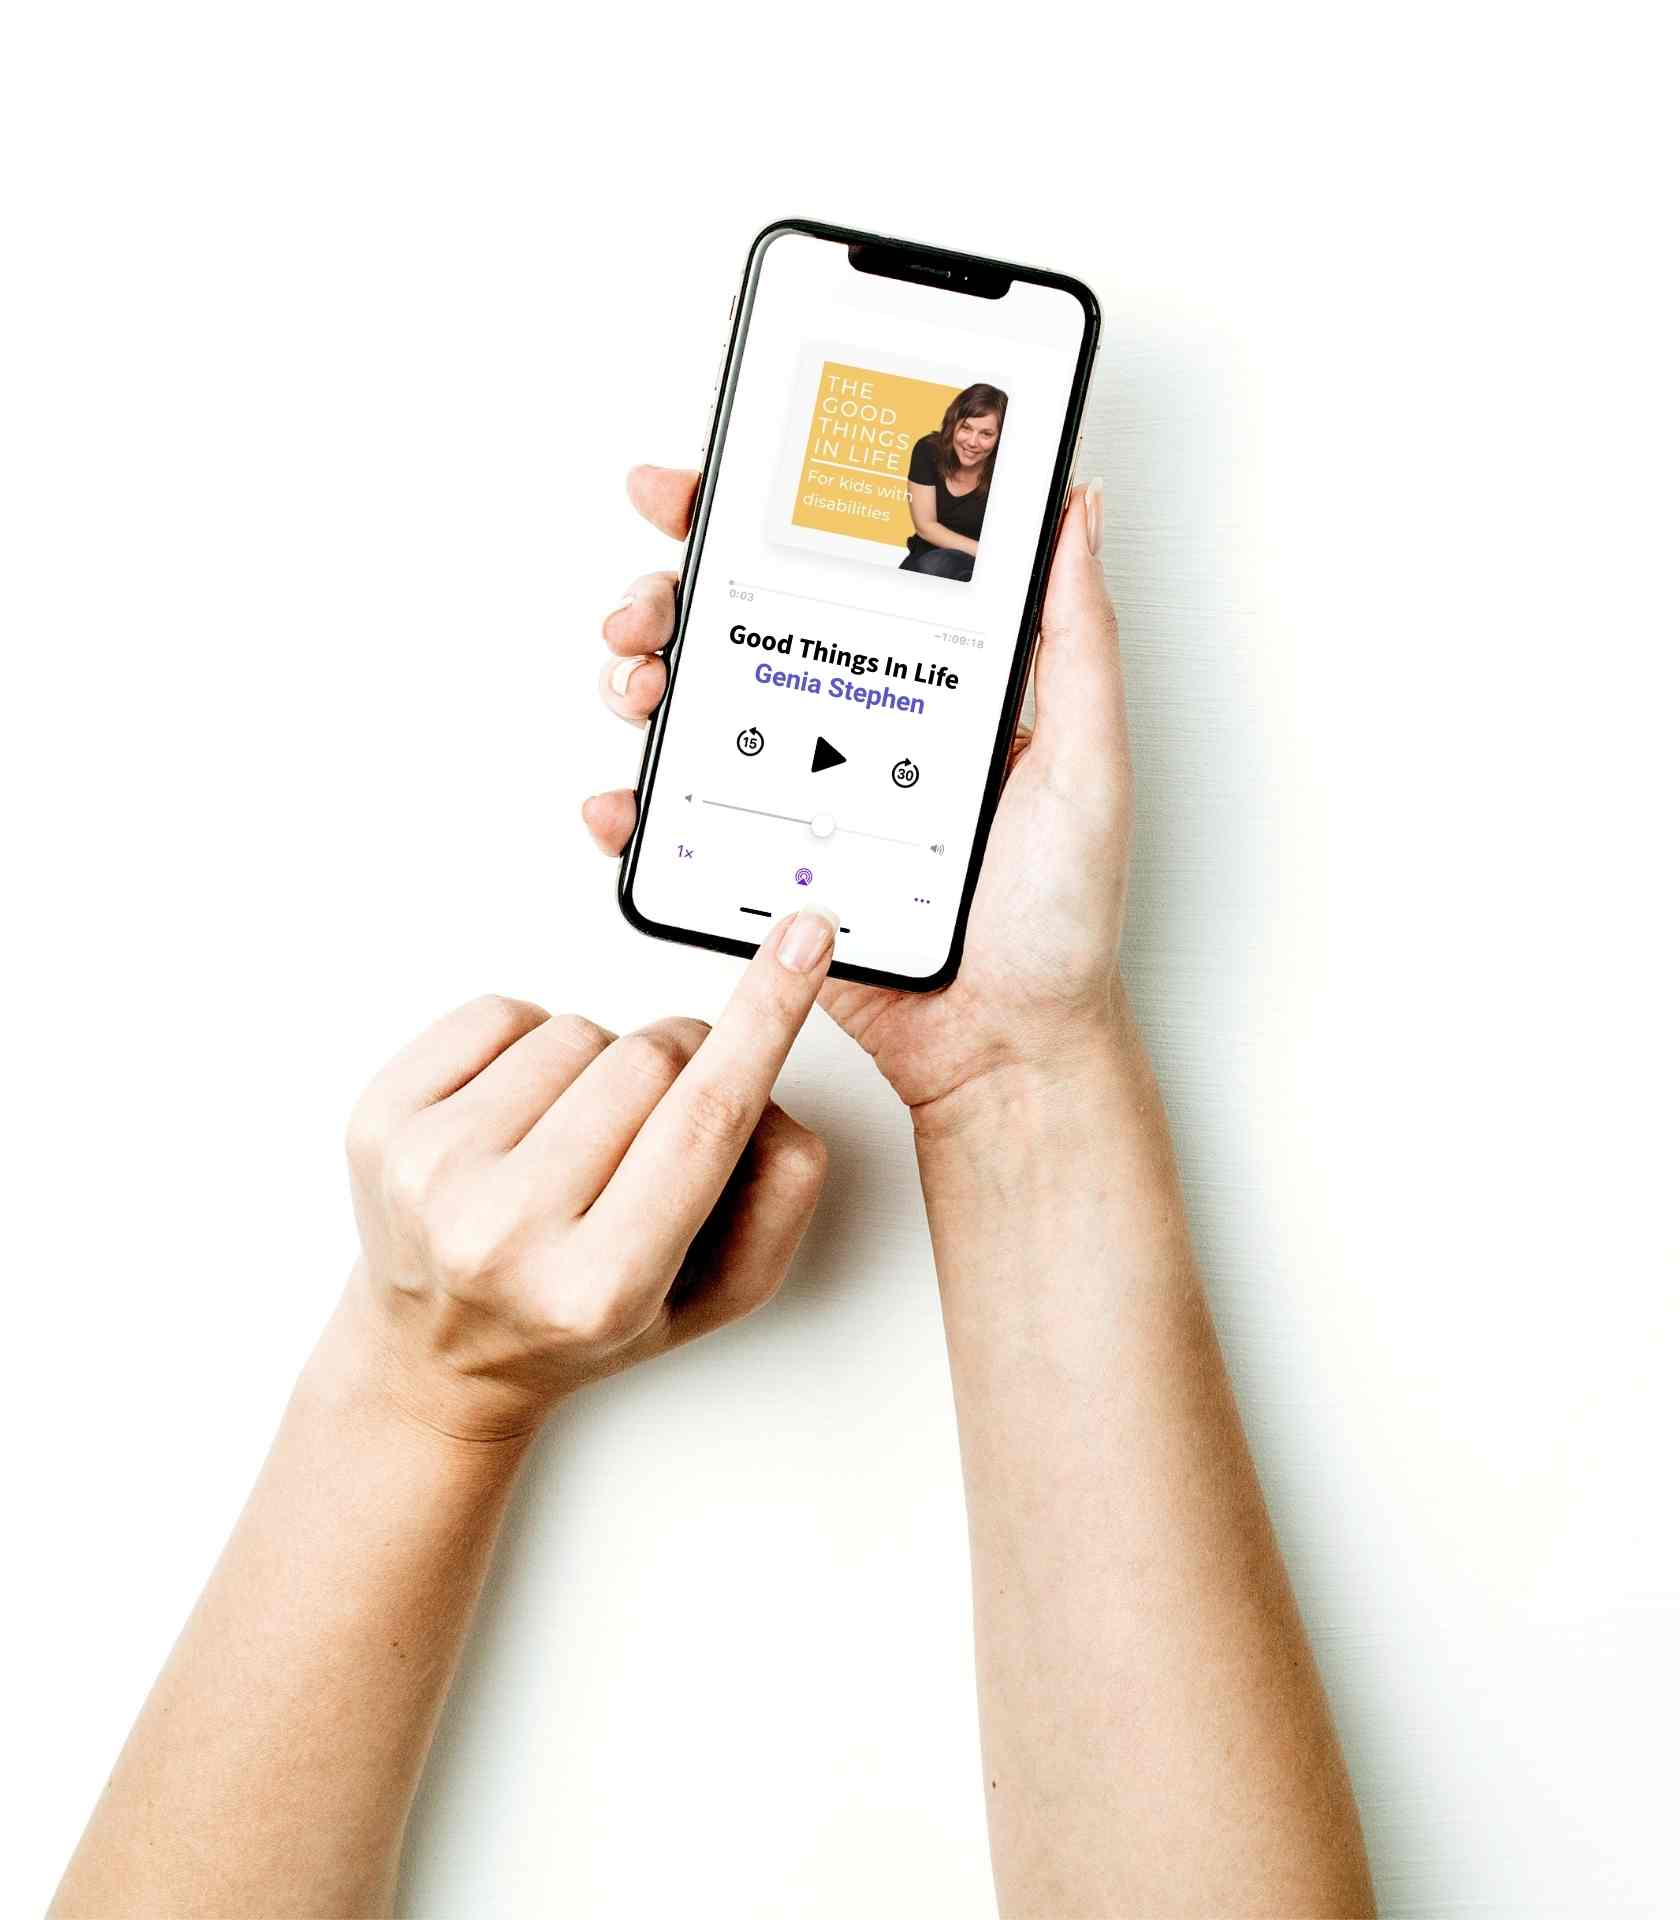 iphone with podcast image